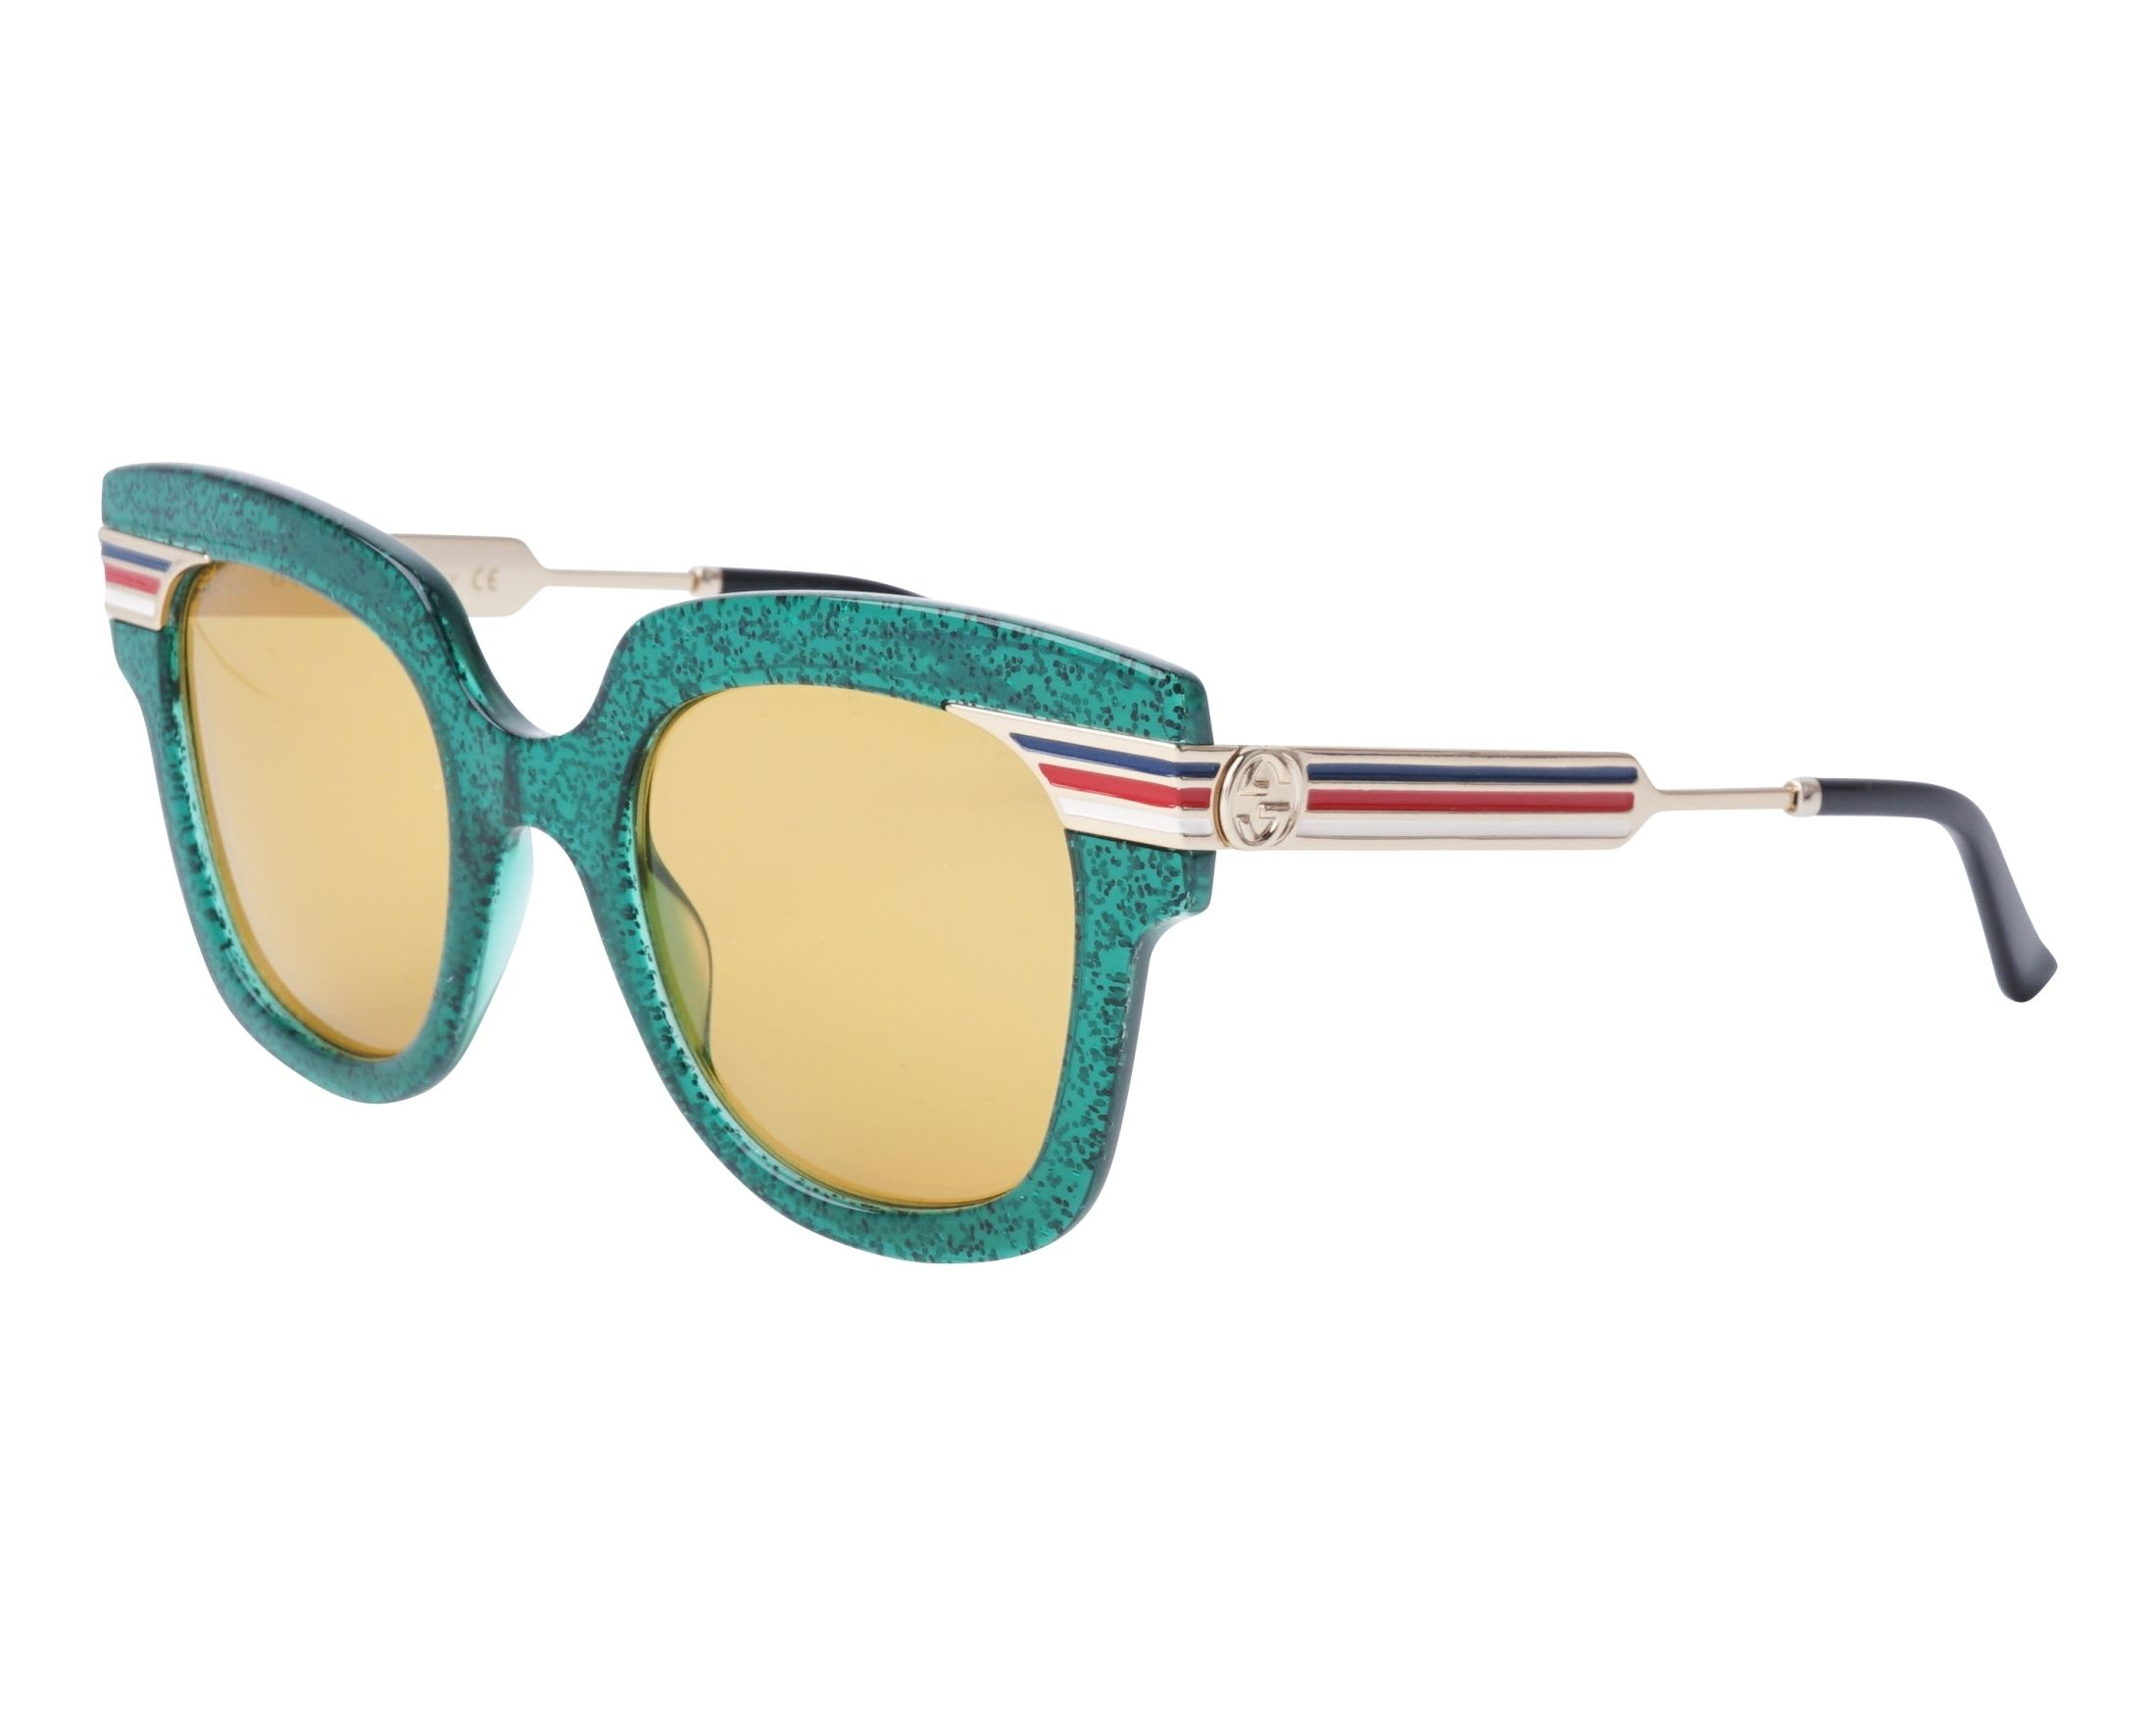 e4cec9c3a07 Sunglasses Gucci GG-0281-S 006 50-23 Green Gold profile view